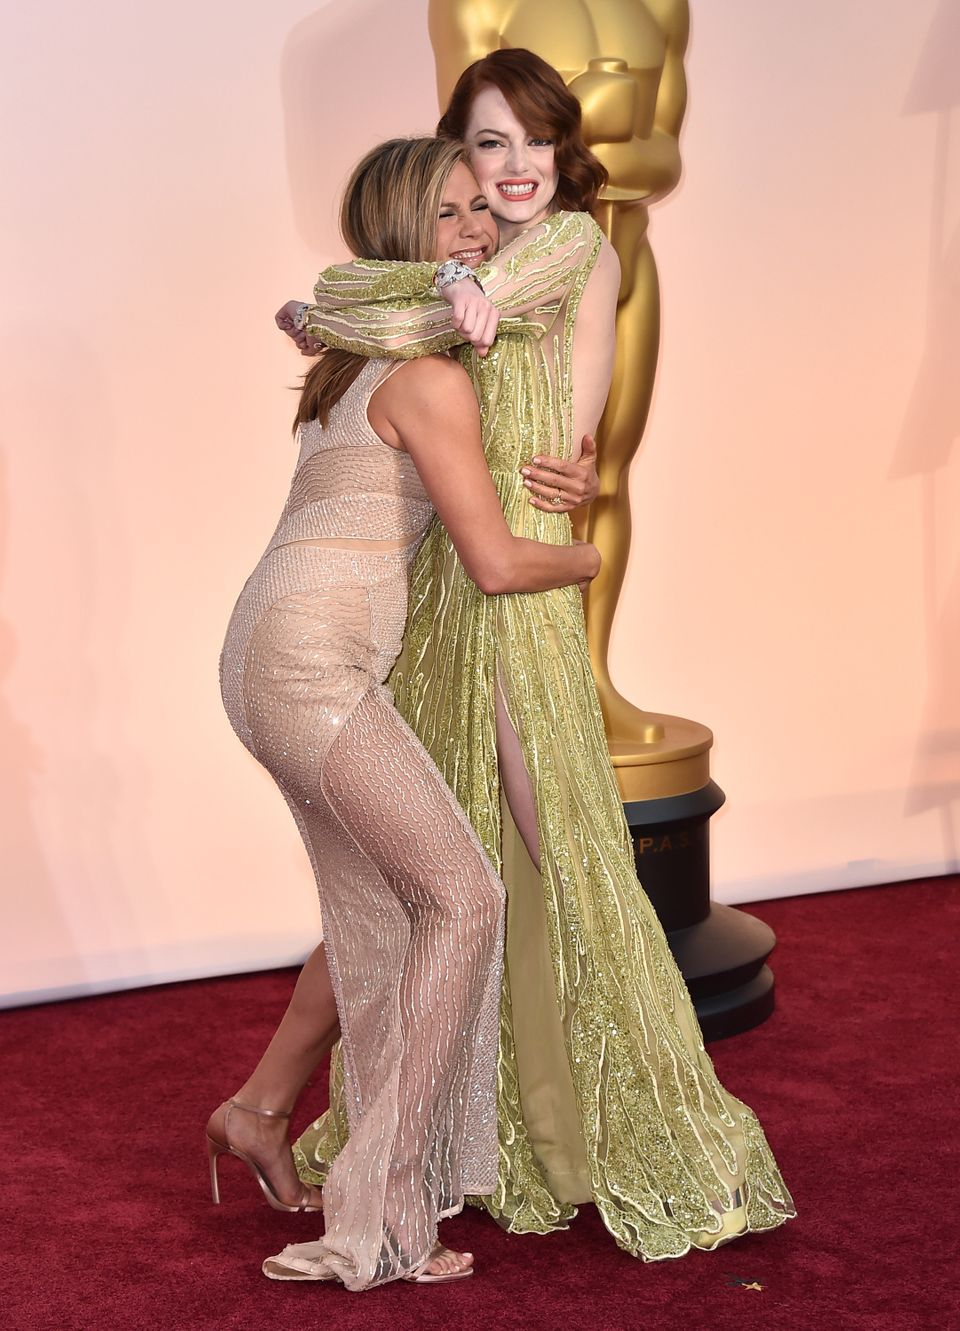 Jennifer Aniston, left, and Emma Stone arrive at the Oscars on Sunday, Feb. 22, 2015, at the Dolby Theatre in Los Angeles. (P